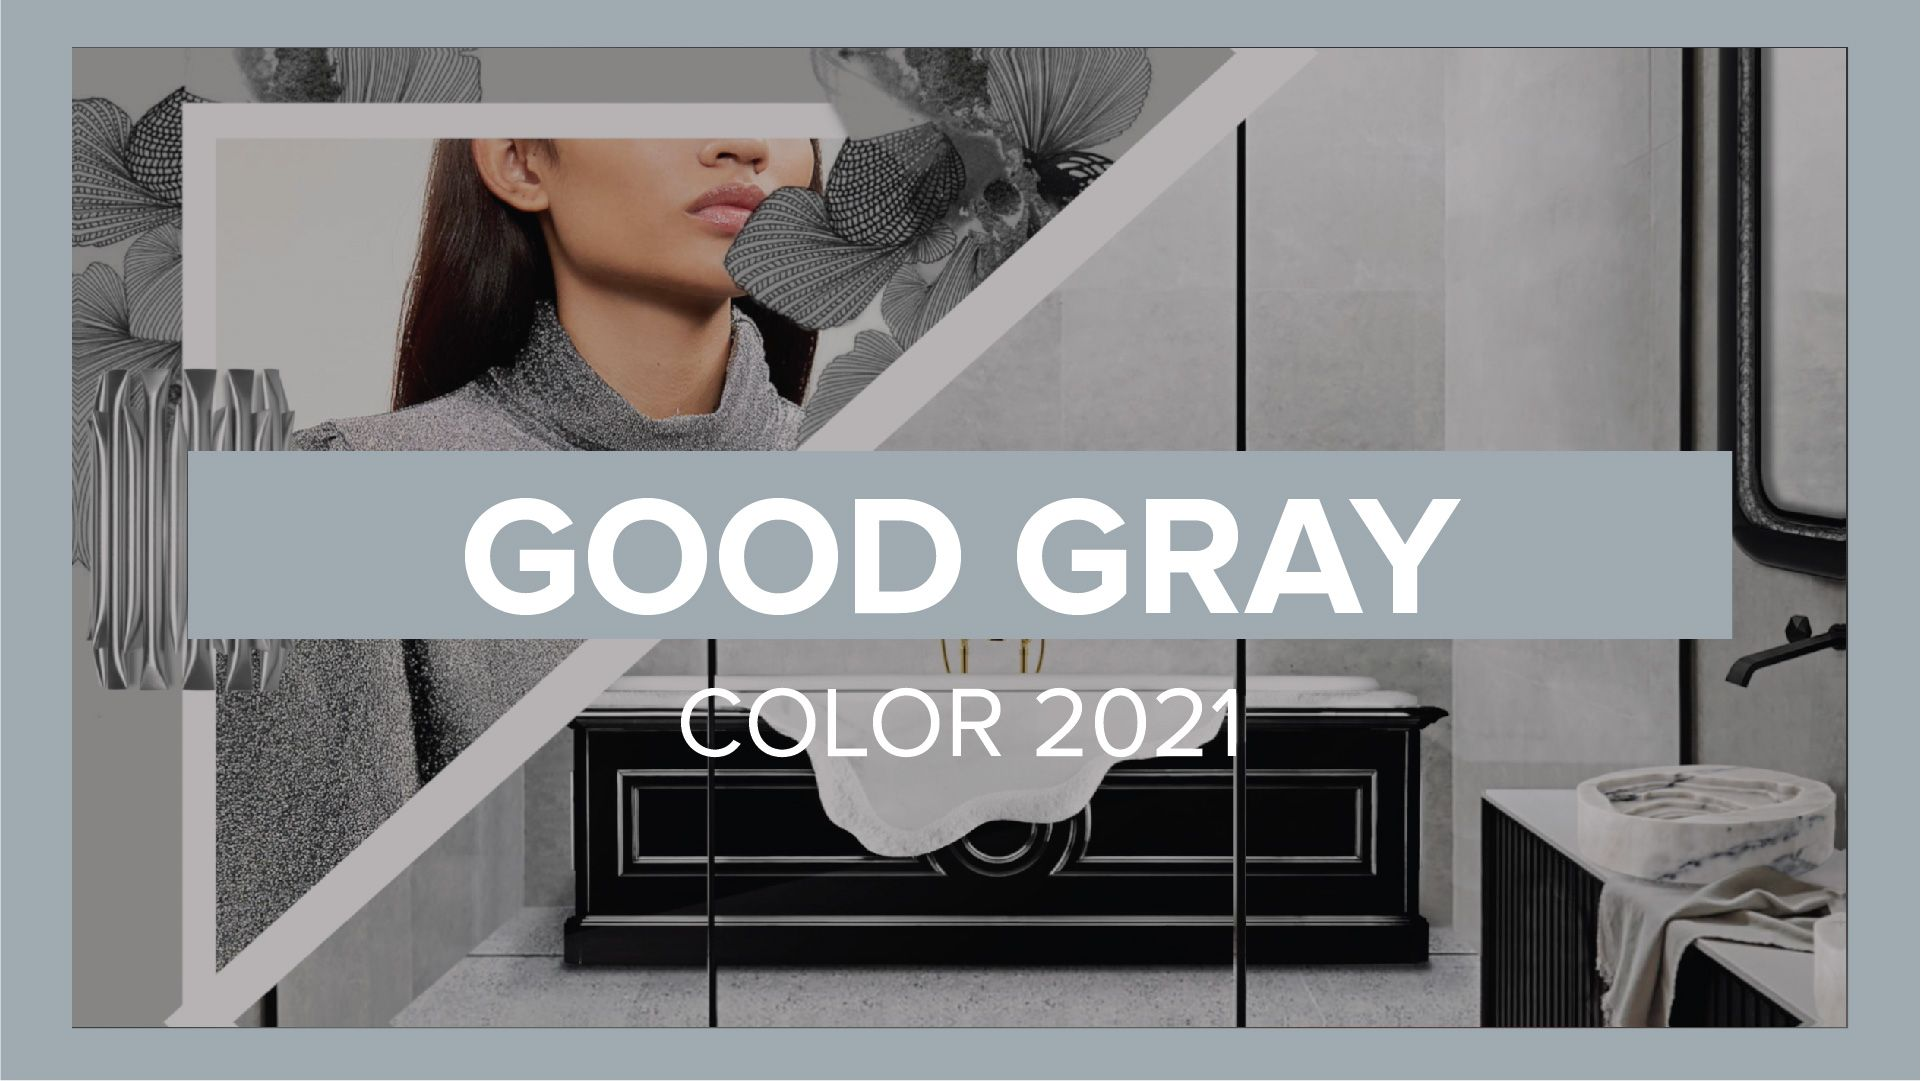 good gray the spring summer color trend 2021 in 2020 on 2021 color trends for interiors id=15350